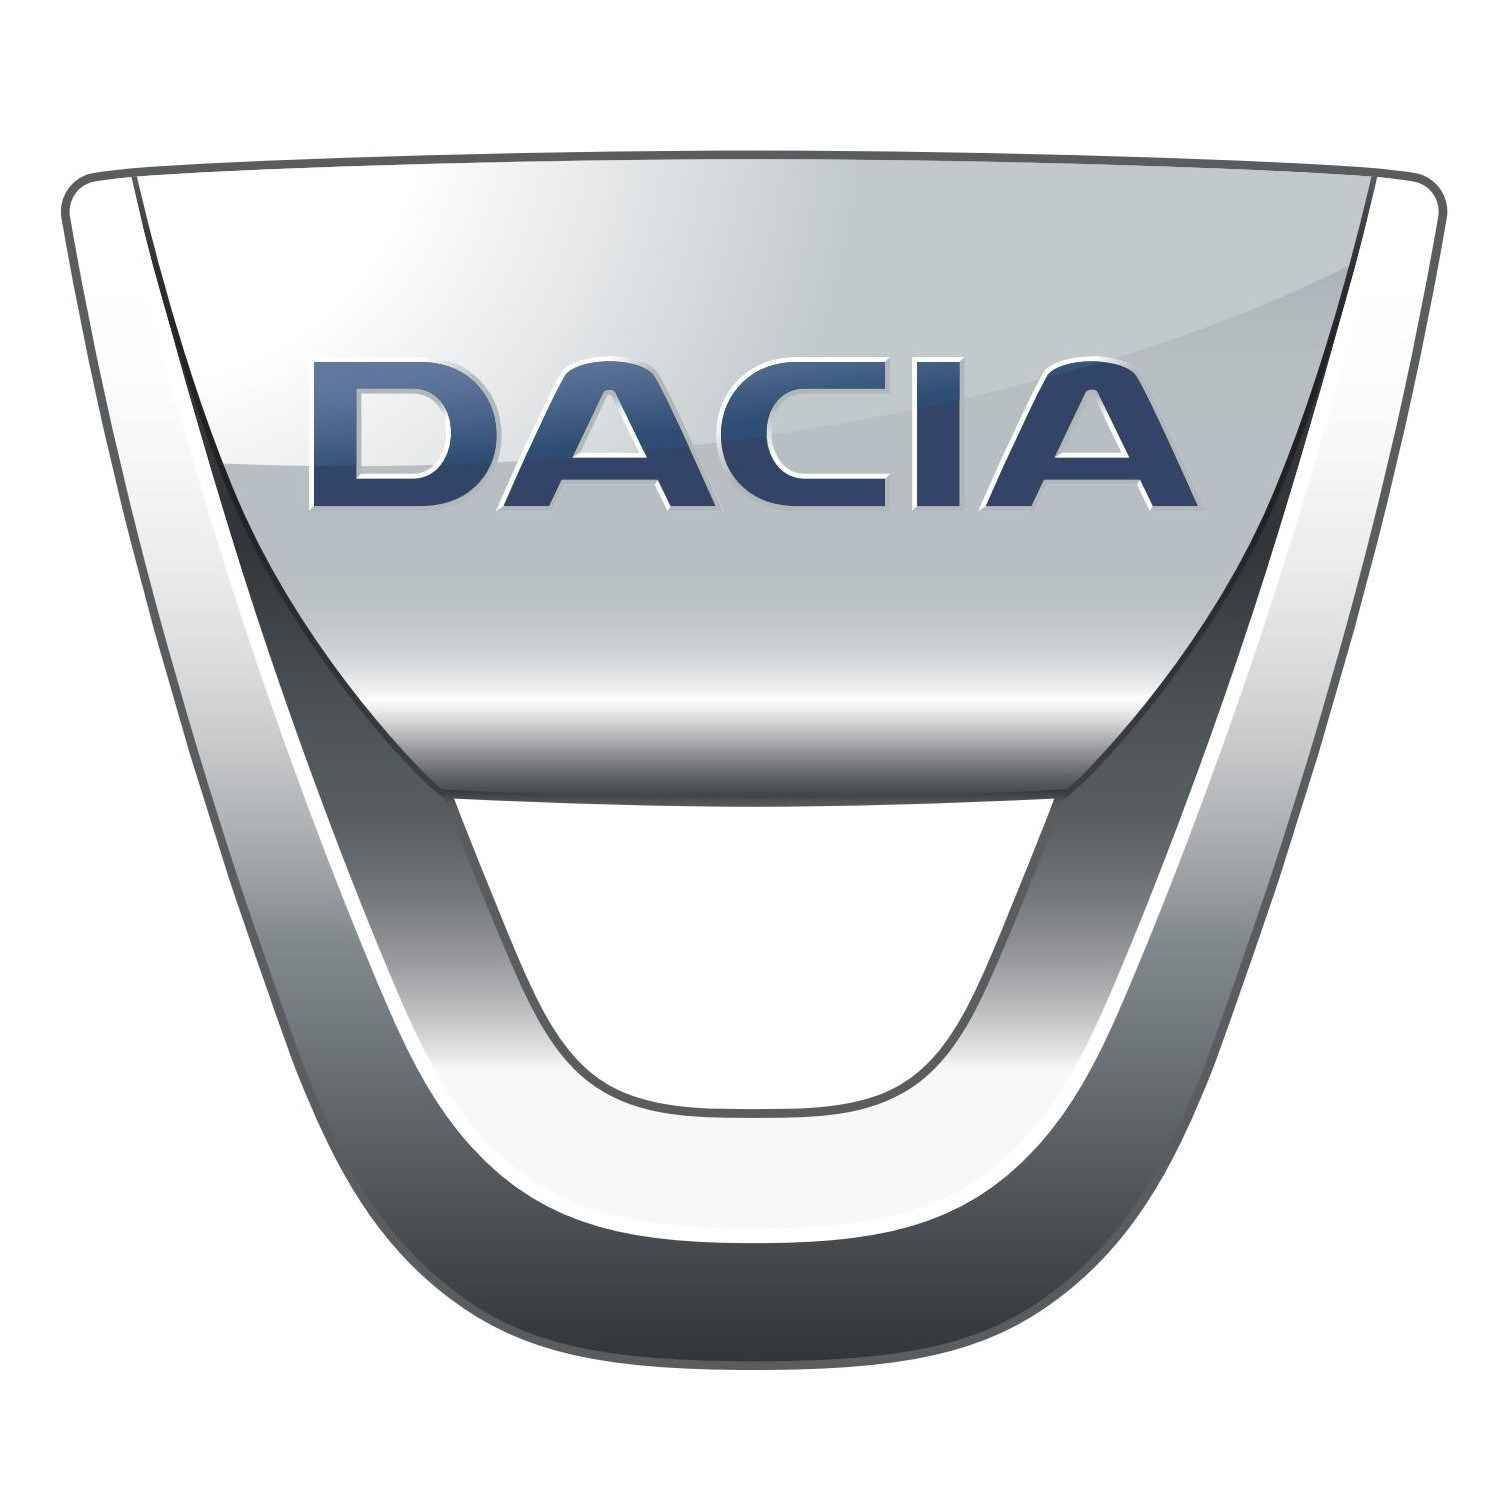 Dacia Logo Vector EPS Free Download, Logo, Icons, Brand Emblems